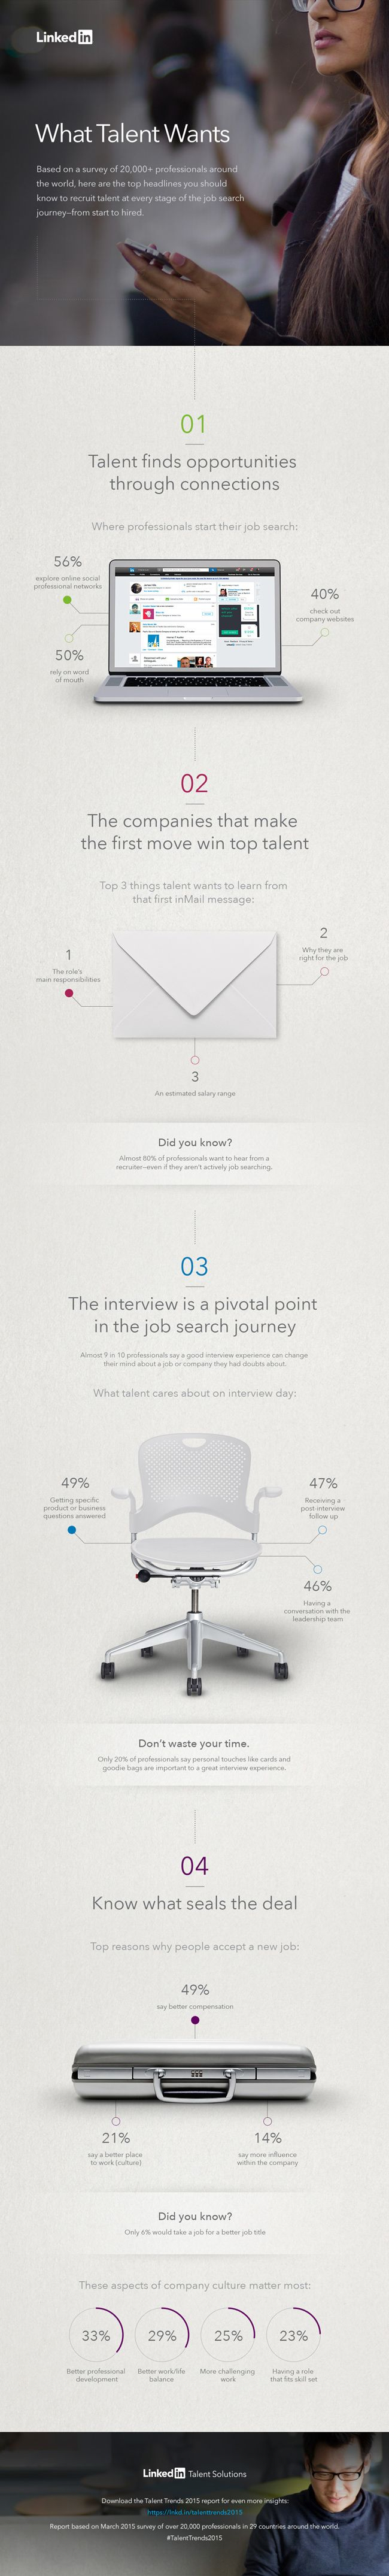 best images about recruitment and social media infographics on 17 best images about recruitment and social media infographics about uk facebook and the social